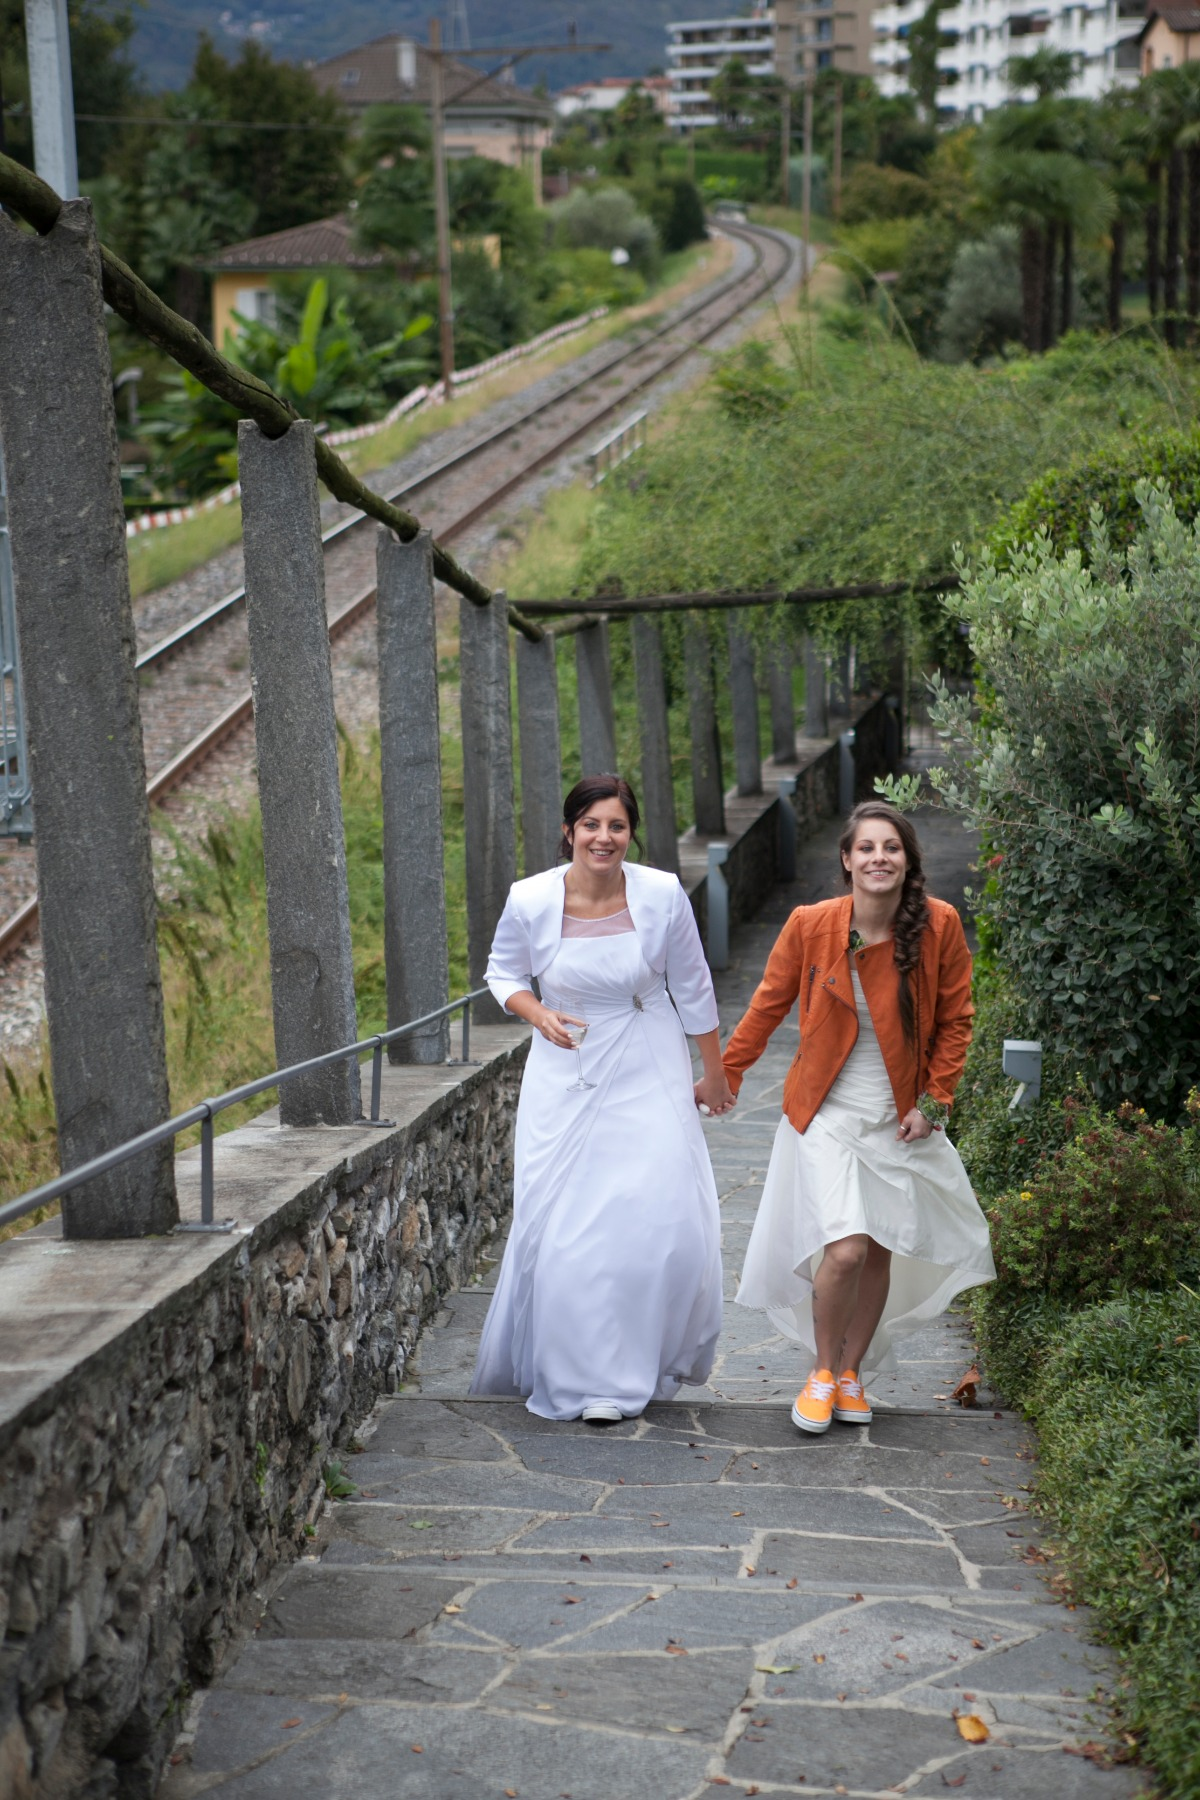 Sweet Wedding in Lake Maggiore Planned in Just Three Months